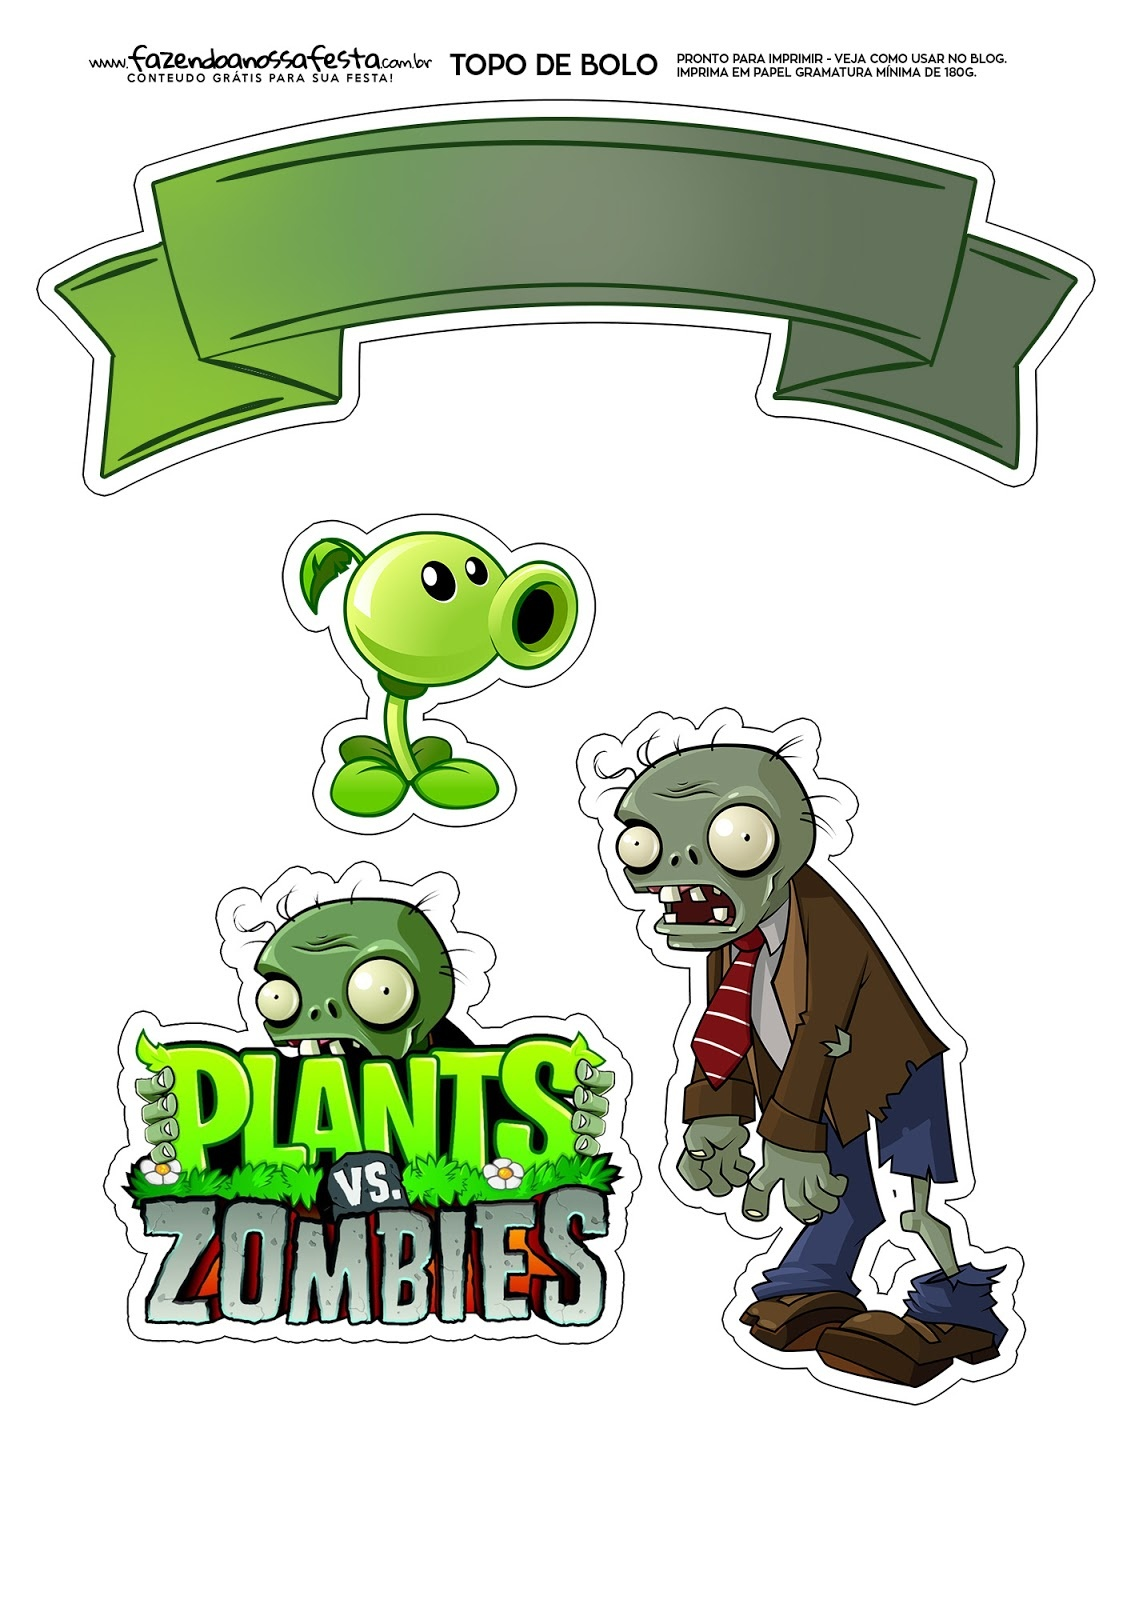 Plants Vs. Zombies: Free Printable Cake Toppers. - Oh My Fiesta! For - Plants Vs Zombies Free Printable Invitations